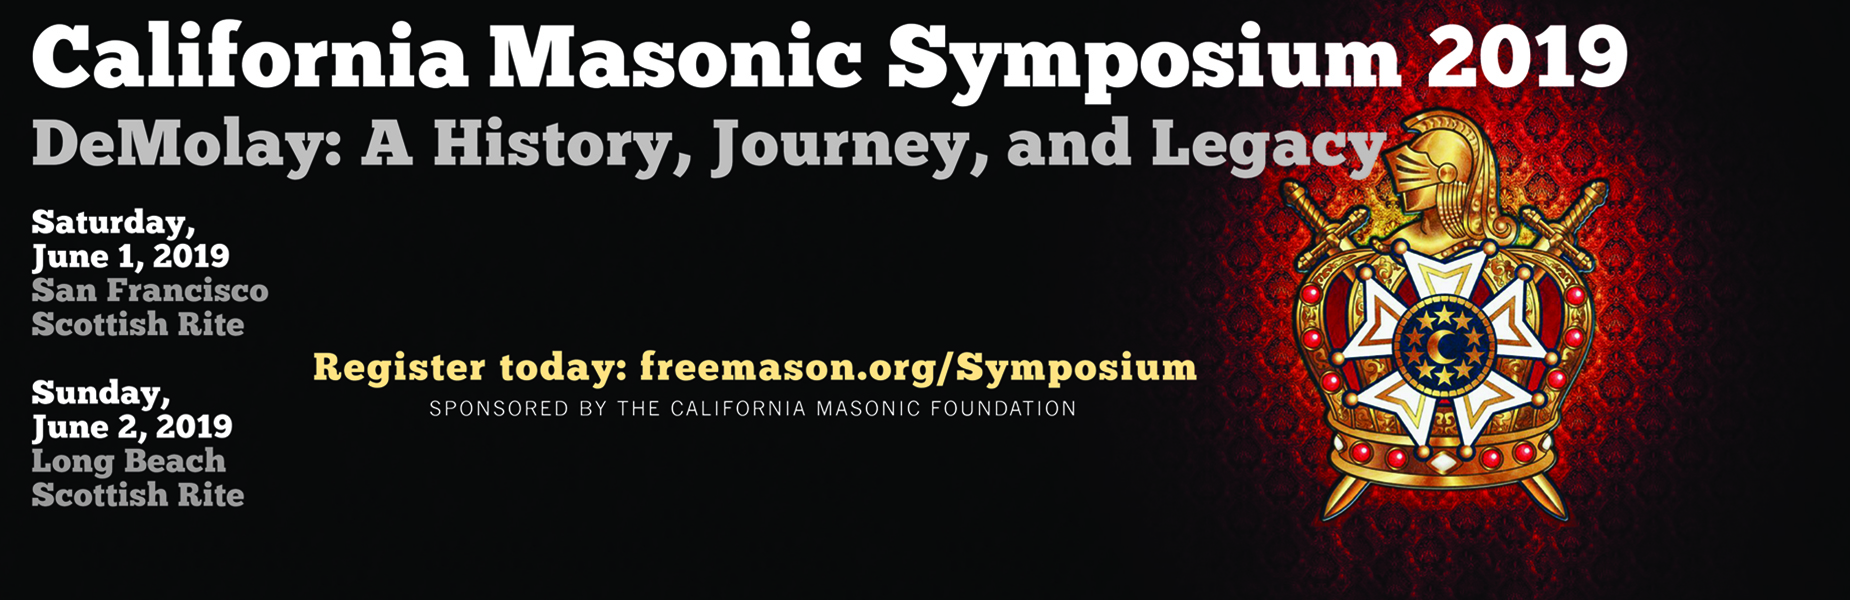 19th Annual California Masonic Symposium